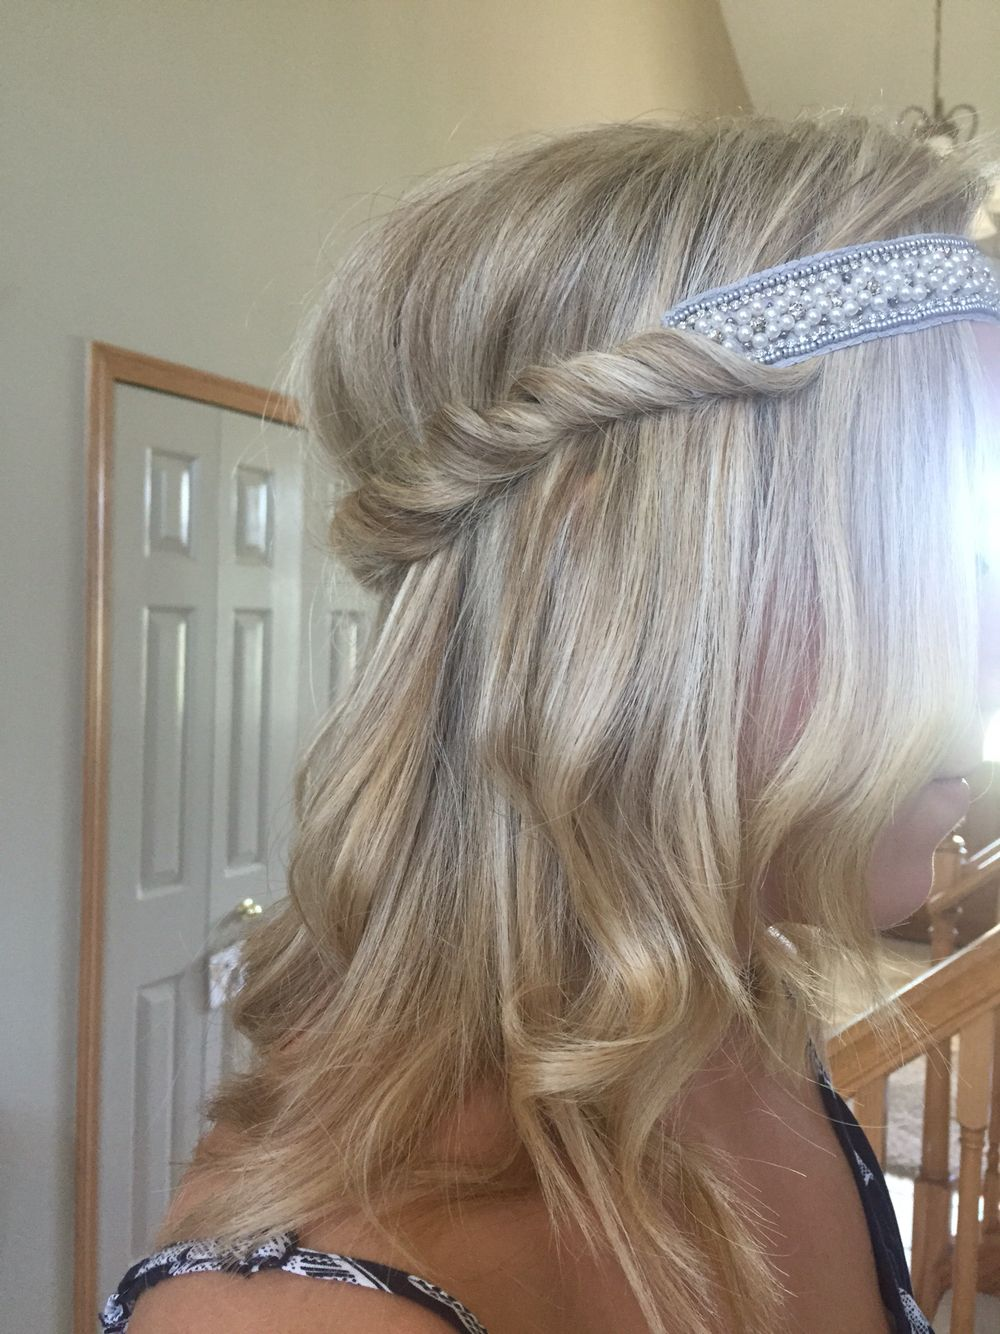 country concert hairstyle | hair & beauty | concert